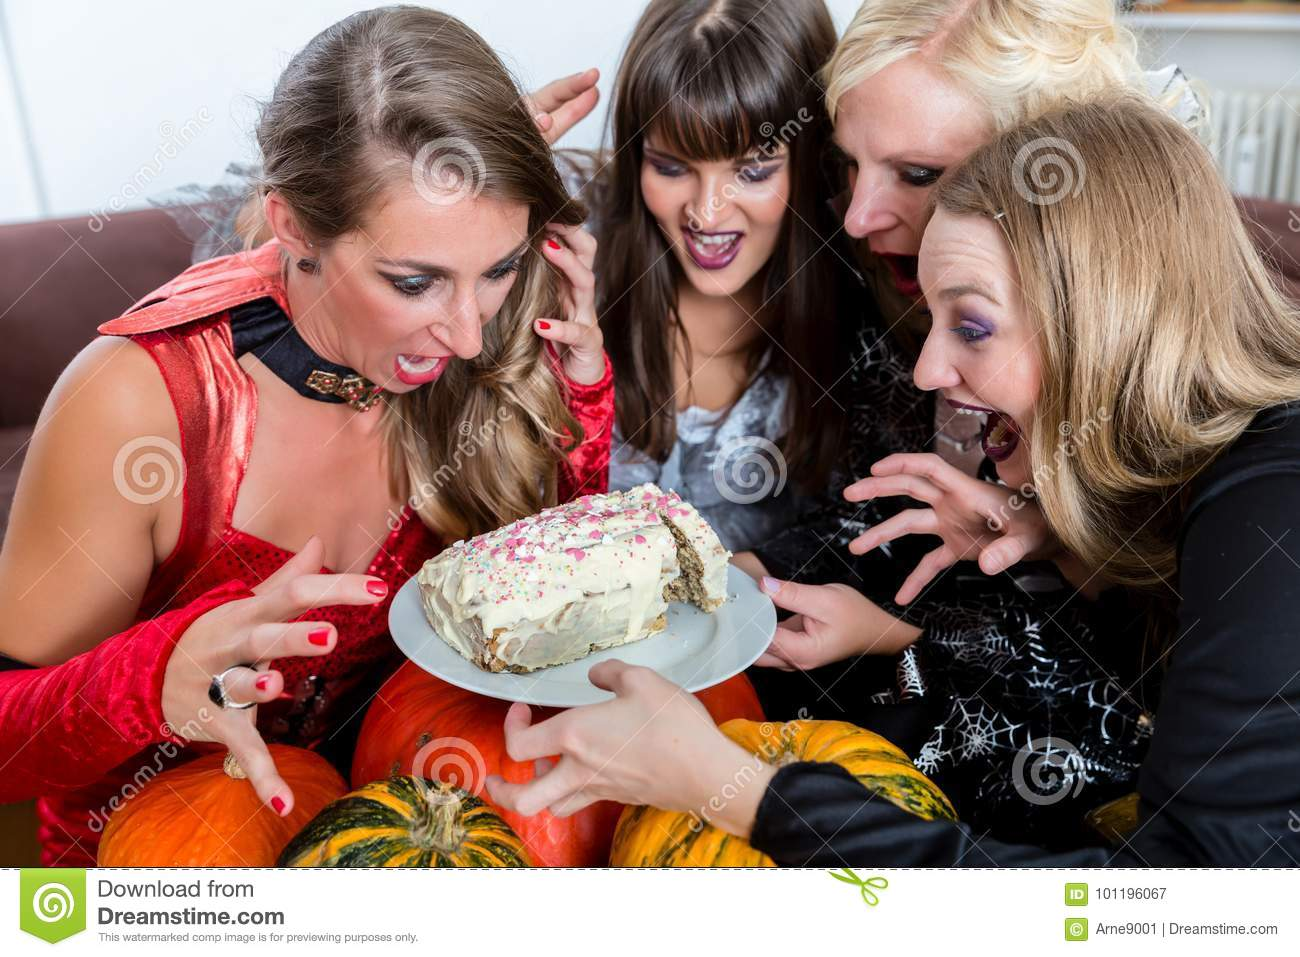 Download comp  sc 1 st  Dreamstime.com & Four Women Wearing Halloween Costumes While Posing Funny Before ...